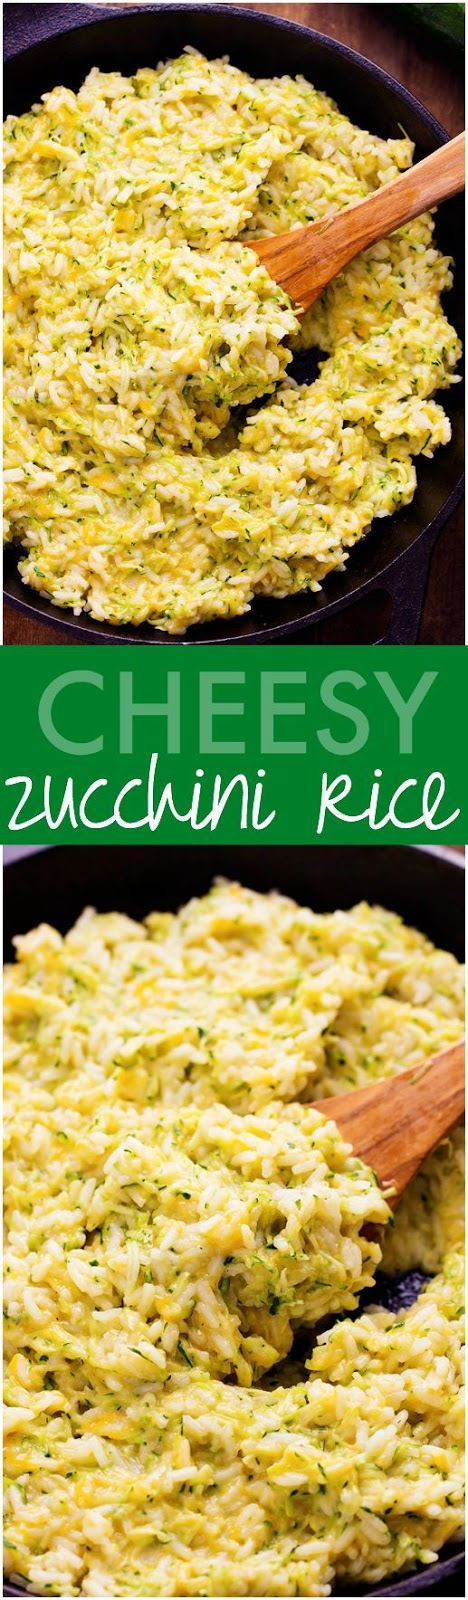 CHEESY ZUCCHINI RICE #CHEESY #ZUCCHINI #RICE #DESSERTS #HEALTHYFOOD #EASY_RECIPES #DINNER #LAUCH #DELICIOUS #EASY #HOLIDAYS #RECIPE #SPECIAL_DIET #WORLD_CUISINE #CAKE #GRILL #APPETIZERS #HEALTHY_RECIPES #DRINKS #COOKING_METHOD #ITALIAN_RECIPES #MEAT #VEGAN_RECIPES #COOKIES #PASTA #FRUIT #SALAD #SOUP_APPETIZERS #NON_ALCOHOLIC_DRINKS #MEAL_PLANNING #VEGETABLES #SOUP #PASTRY #CHOCOLATE #DAIRY #ALCOHOLIC_DRINKS #BULGUR_SALAD #BAKING #SNACKS #BEEF_RECIPES #MEAT_APPETIZERS #MEXICAN_RECIPES #BREAD #ASIAN_RECIPES #SEAFOOD_APPETIZERS #MUFFINS #BREAKFAST_AND_BRUNCH #CONDIMENTS #CUPCAKES #CHEESE #CHICKEN_RECIPES #PIE #COFFEE #NO_BAKE_DESSERTS #HEALTHY_SNACKS #SEAFOOD #GRAIN #LUNCHES_DINNERS #MEXICAN #QUICK_BREAD #LIQUOR